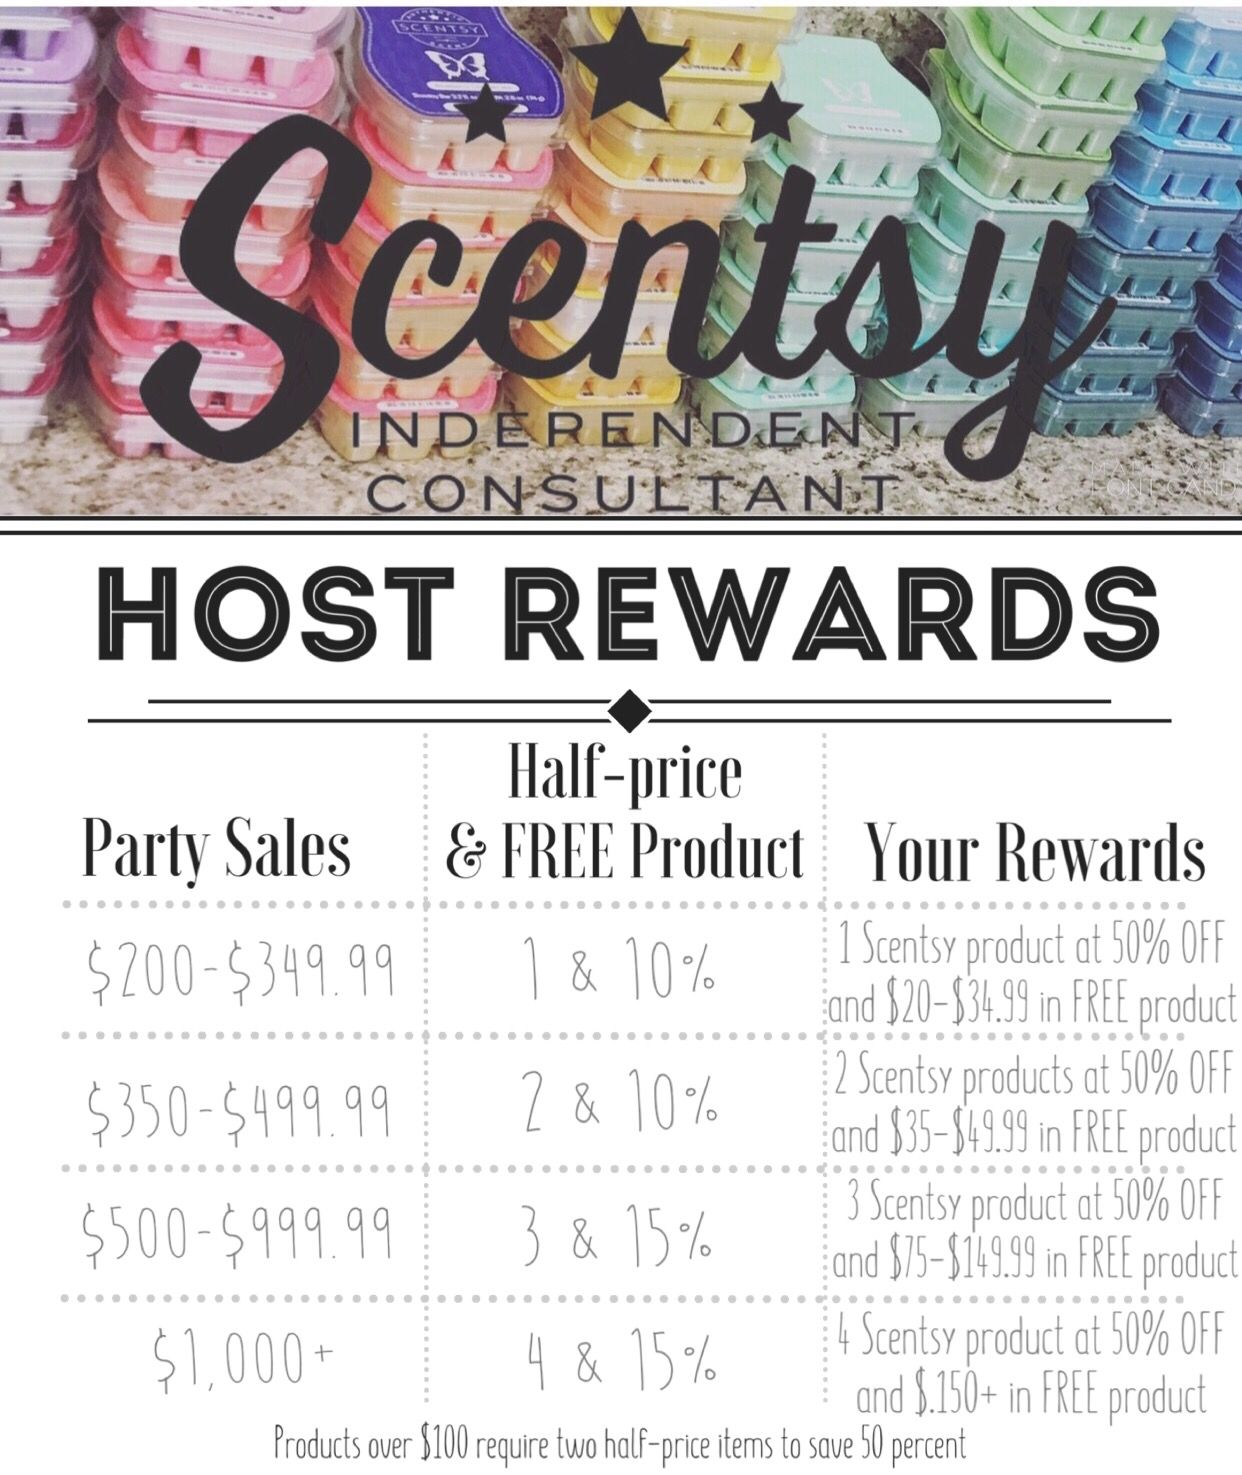 Scentsy Host Rewards Scentsy Party Rewards Scentsy Pinterest